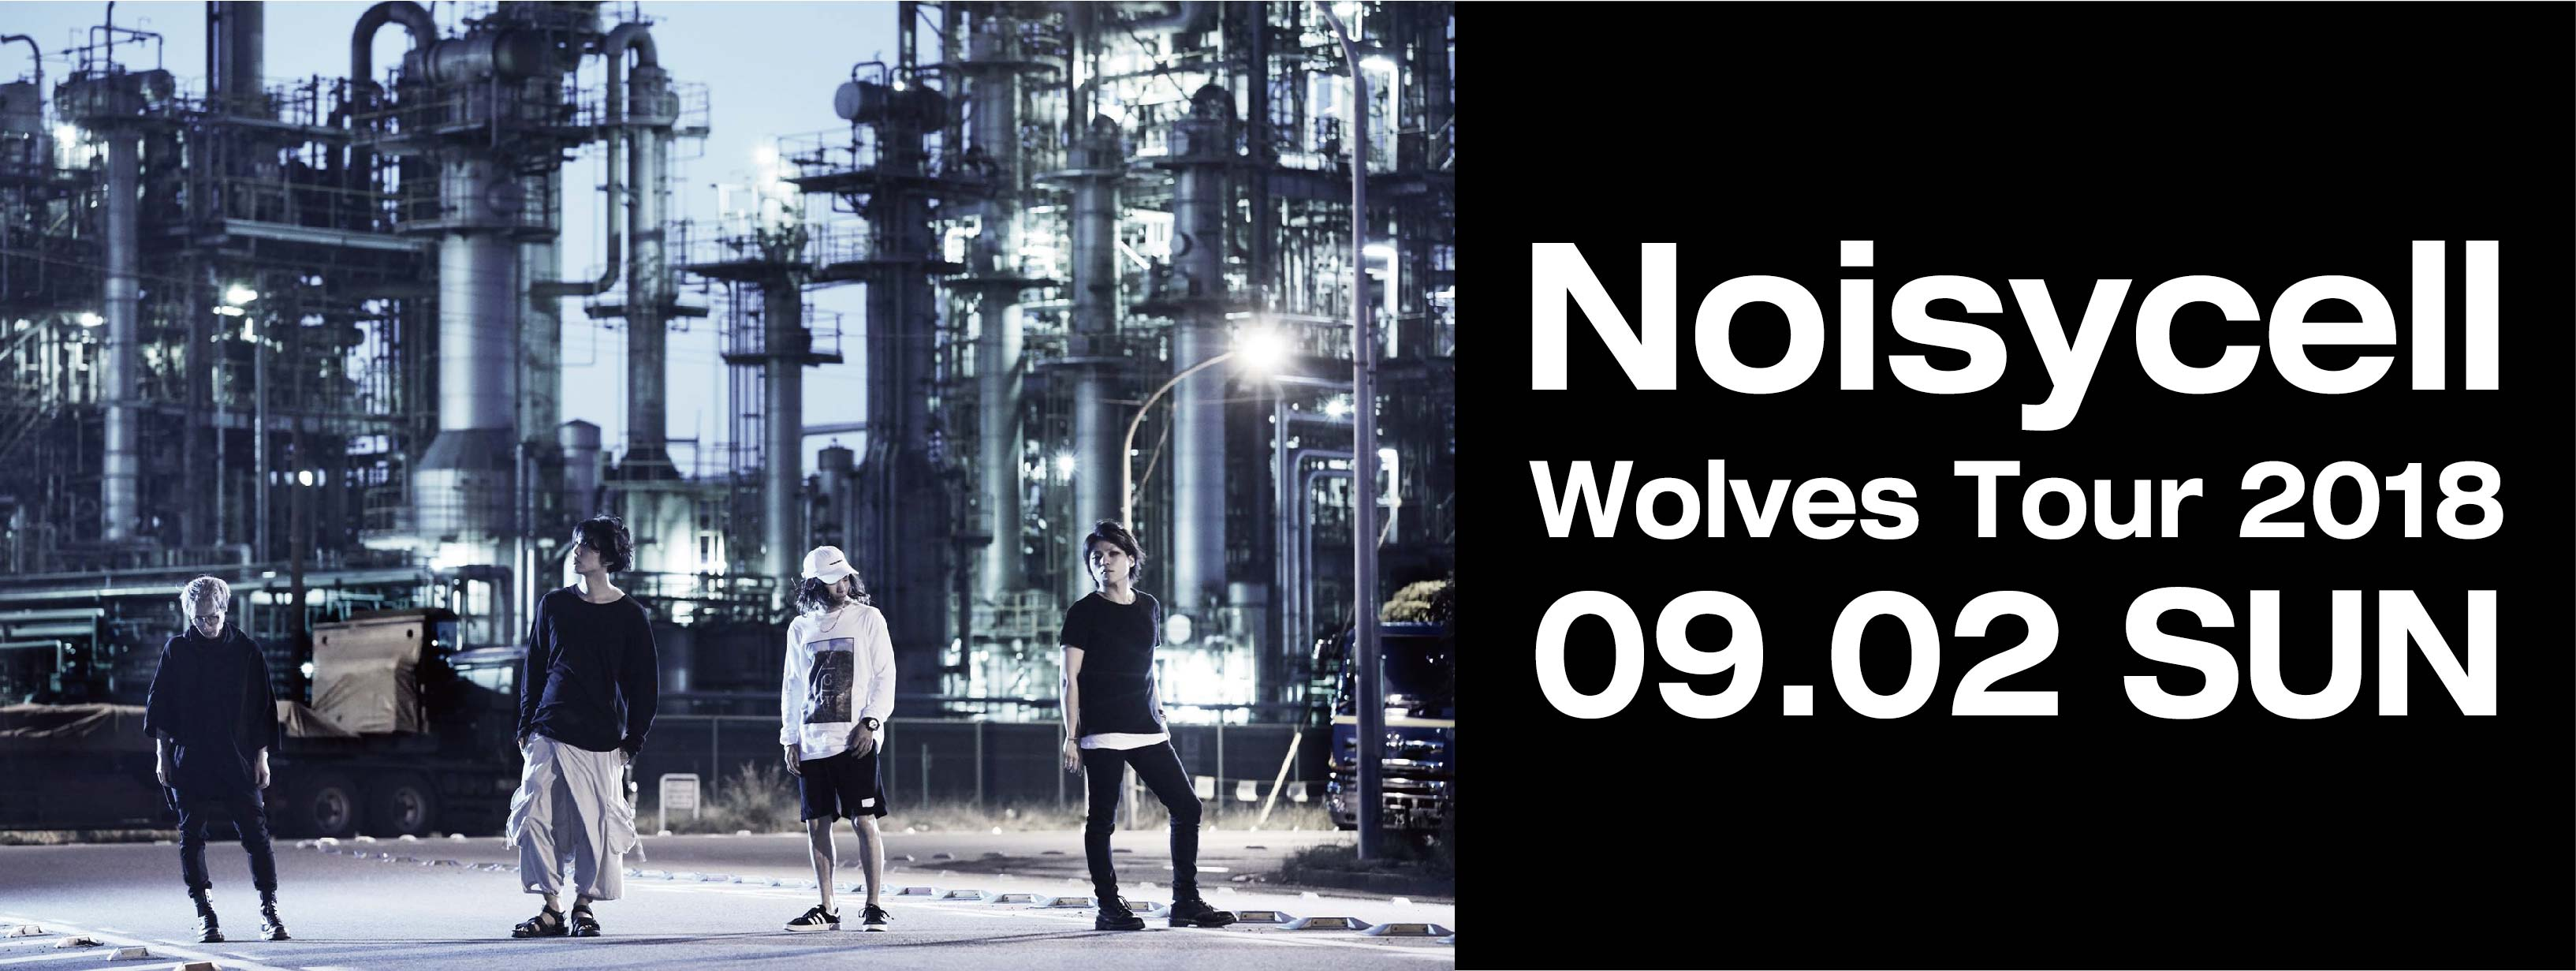 "Noisycell ""Wolves Tour 2018"""